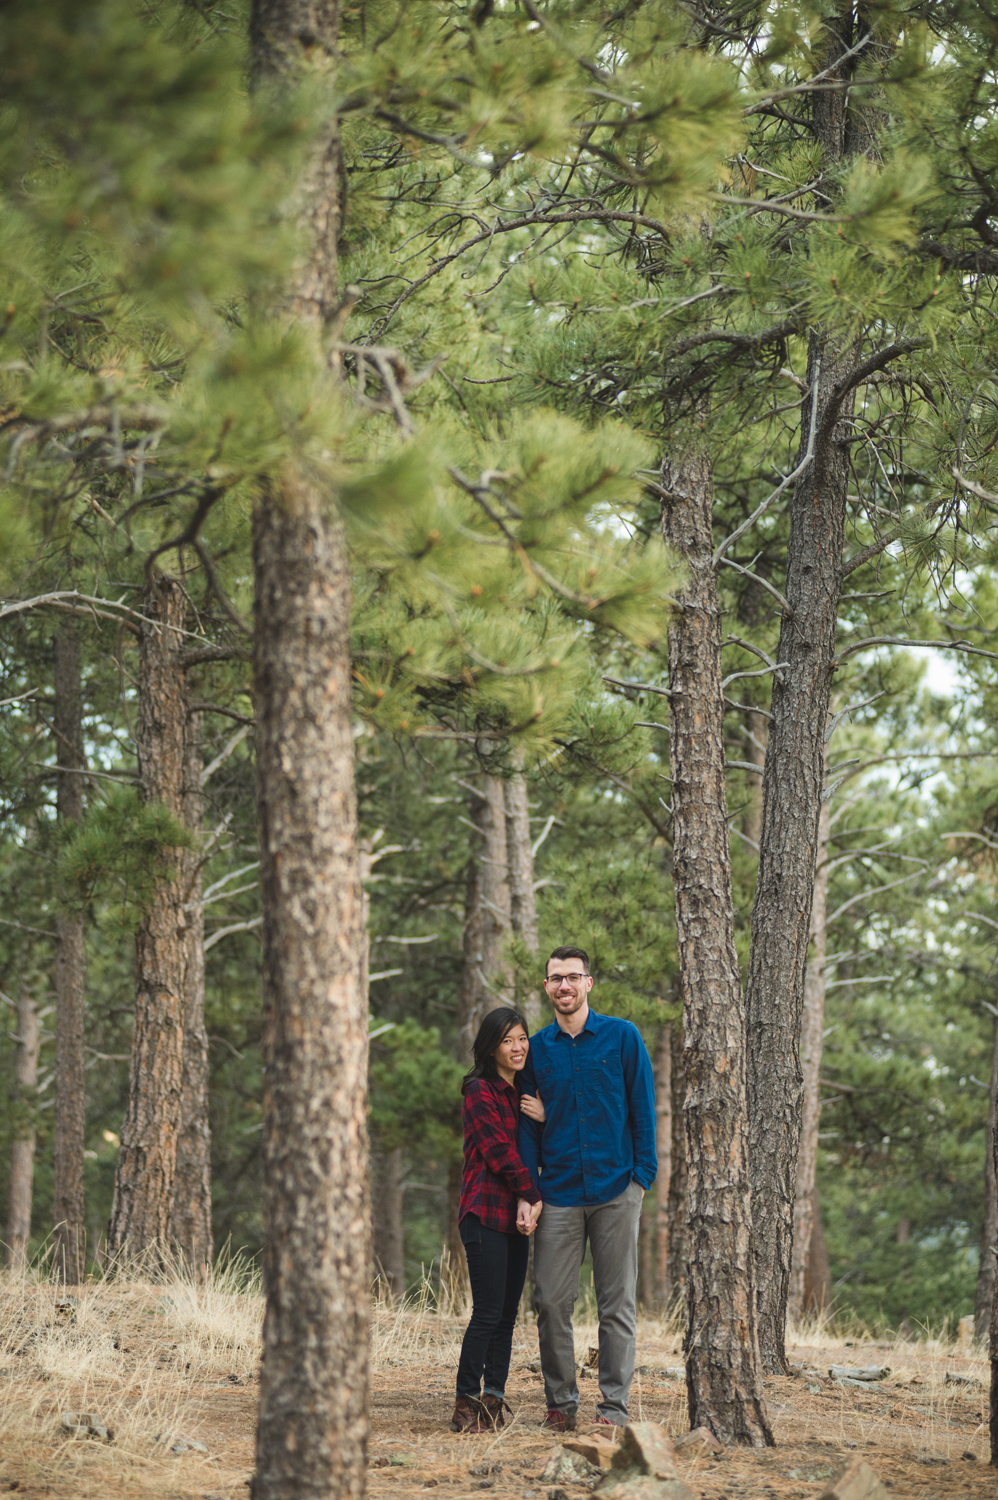 TiffanyandMark_Engaged_0850_squarespace.jpg